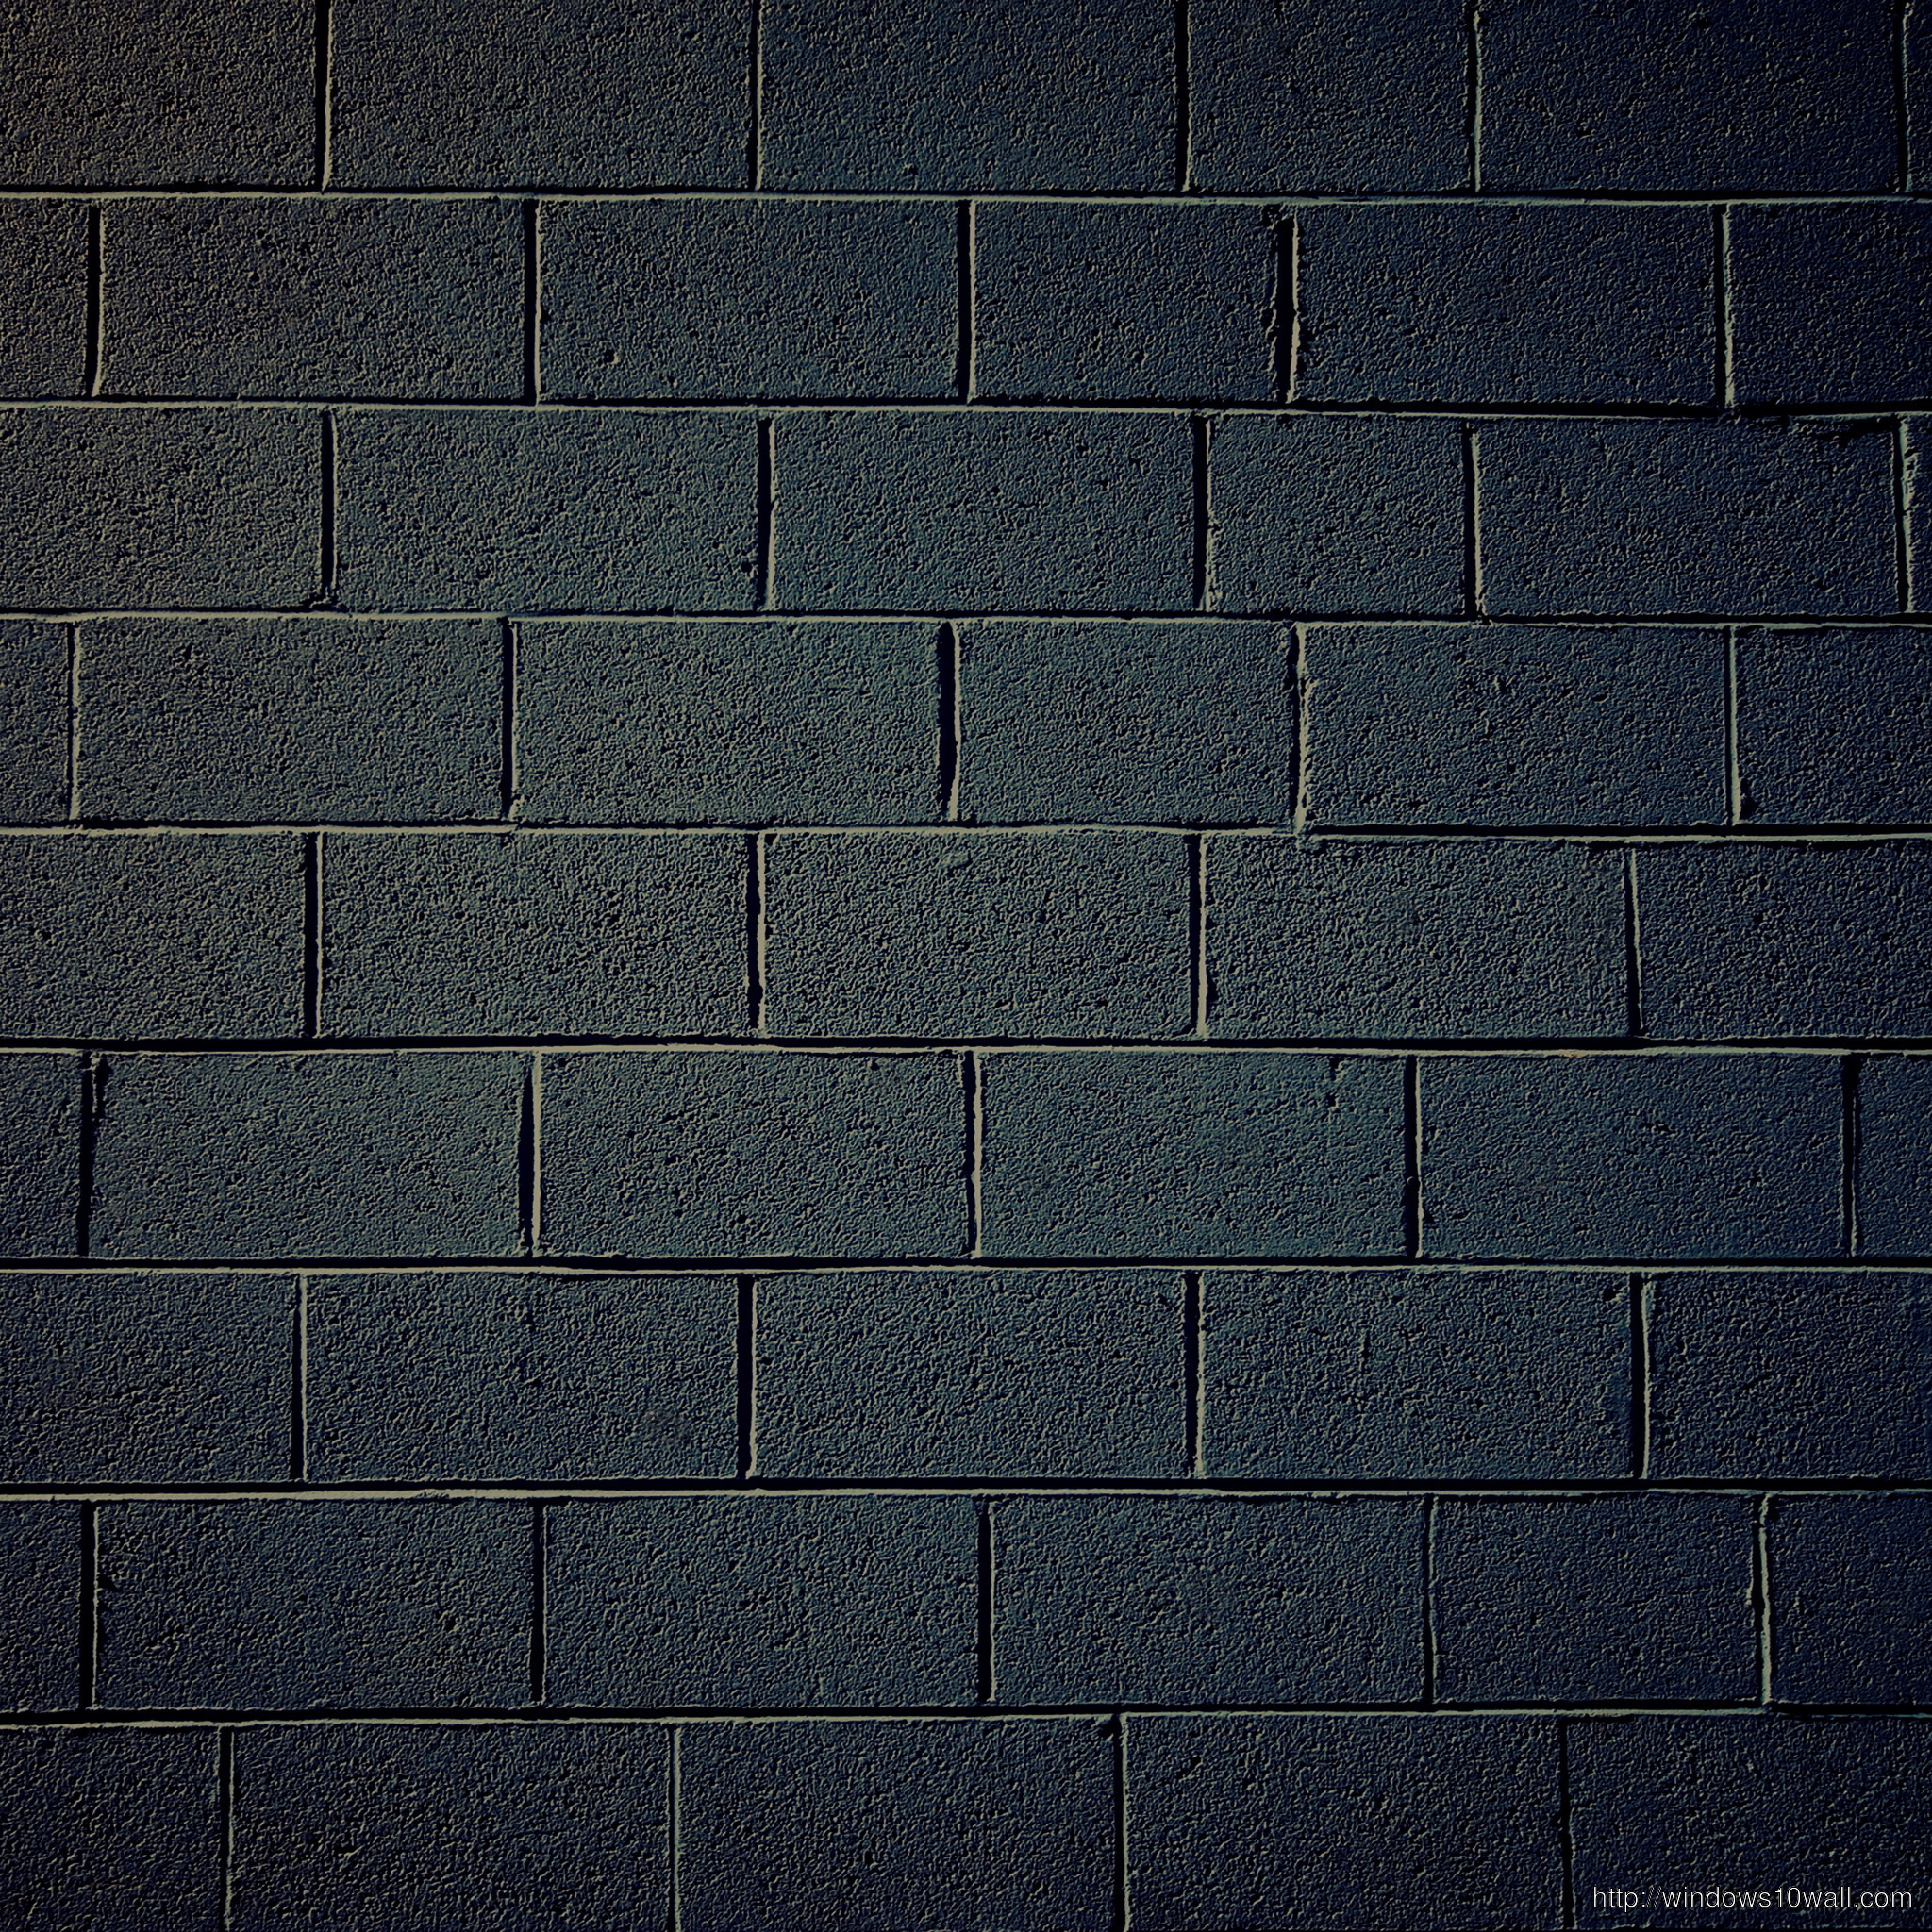 bricks iPad background wallpaper